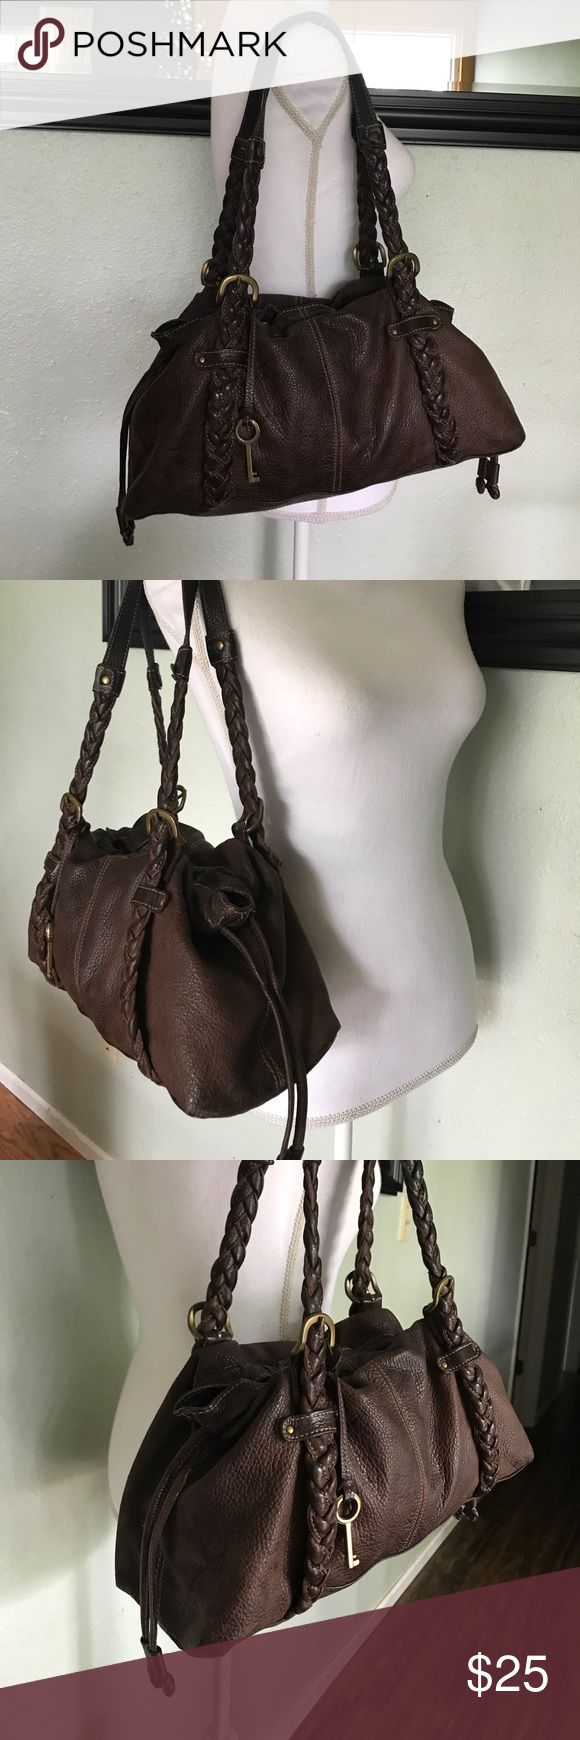 Fossil bag Beautiful brown fossil bag. Brown leather with two shoulder straps. Straps are a pretty braided leather. Top has a magnetic closure plus pull strings. Gold hardware. There are some marks that may come out with leather conditioning. No rips or holes though. Inside has one zipper pocket and two pouches. Height 9, width 15 1/4, depth 5, handle drop 10. Fossil Bags